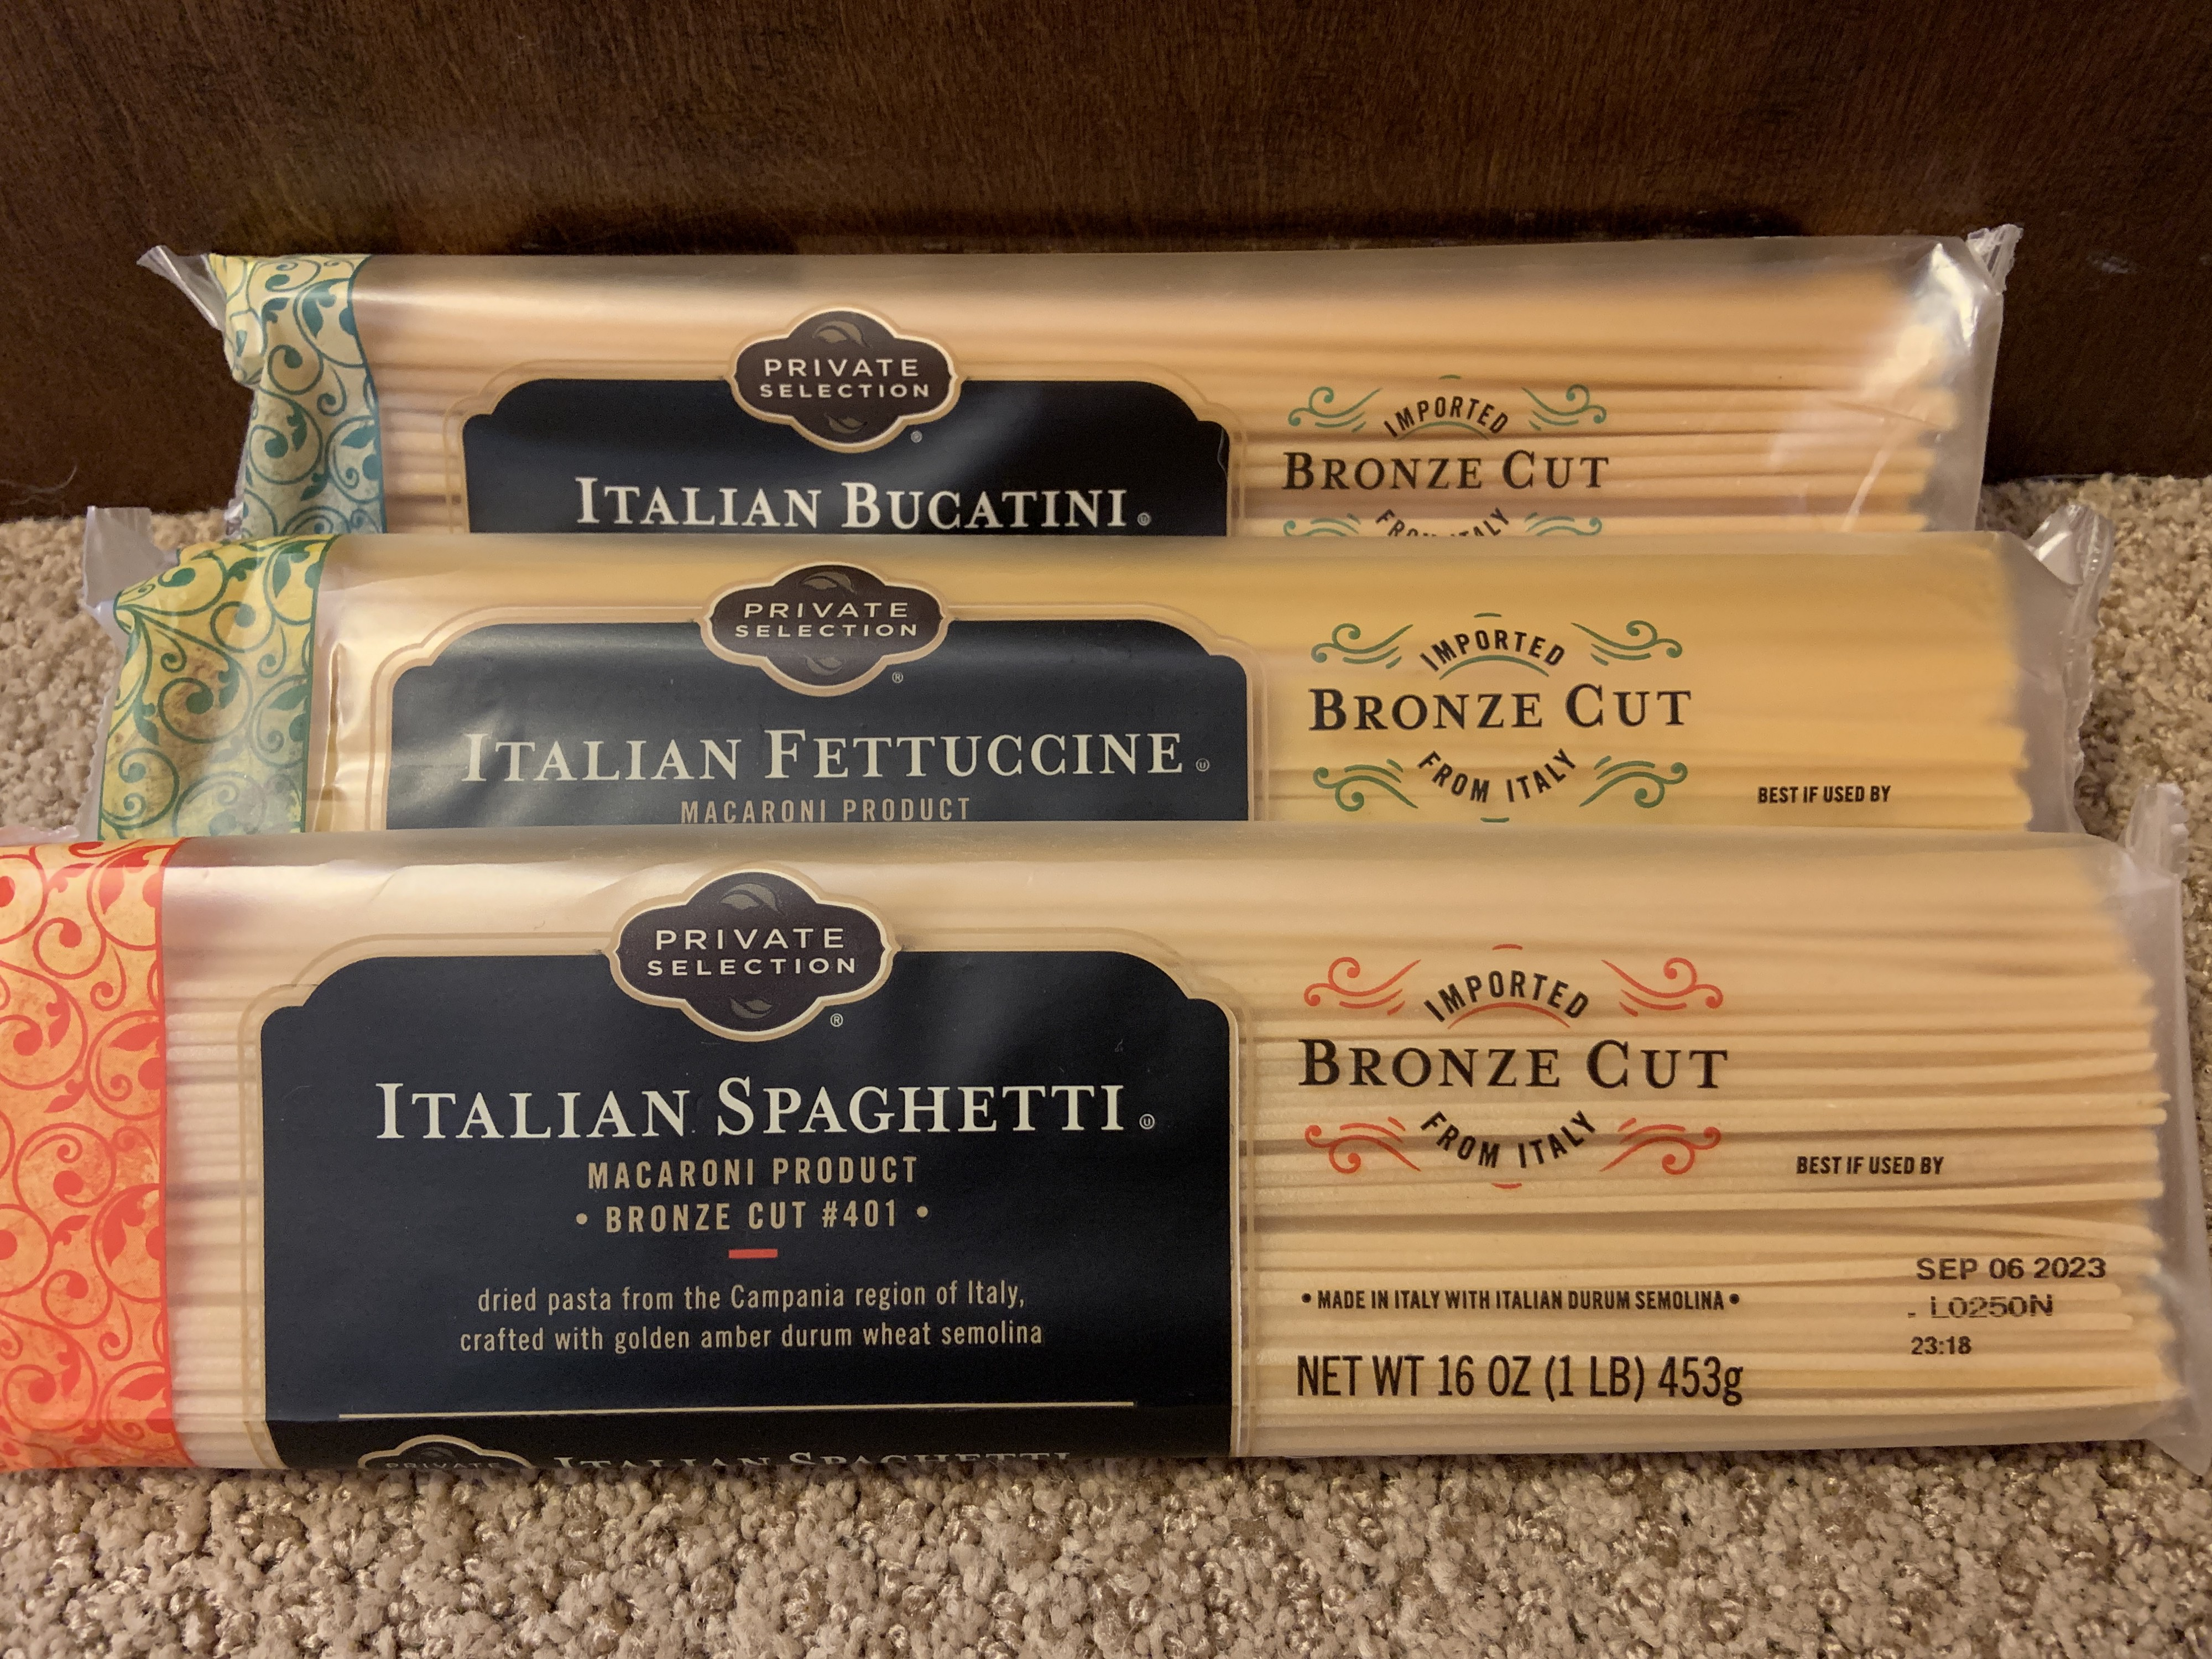 Three kinds of uncooked noodles: spaghetti, fettuccine, and bucatini, all from King Soopers Private Selection.